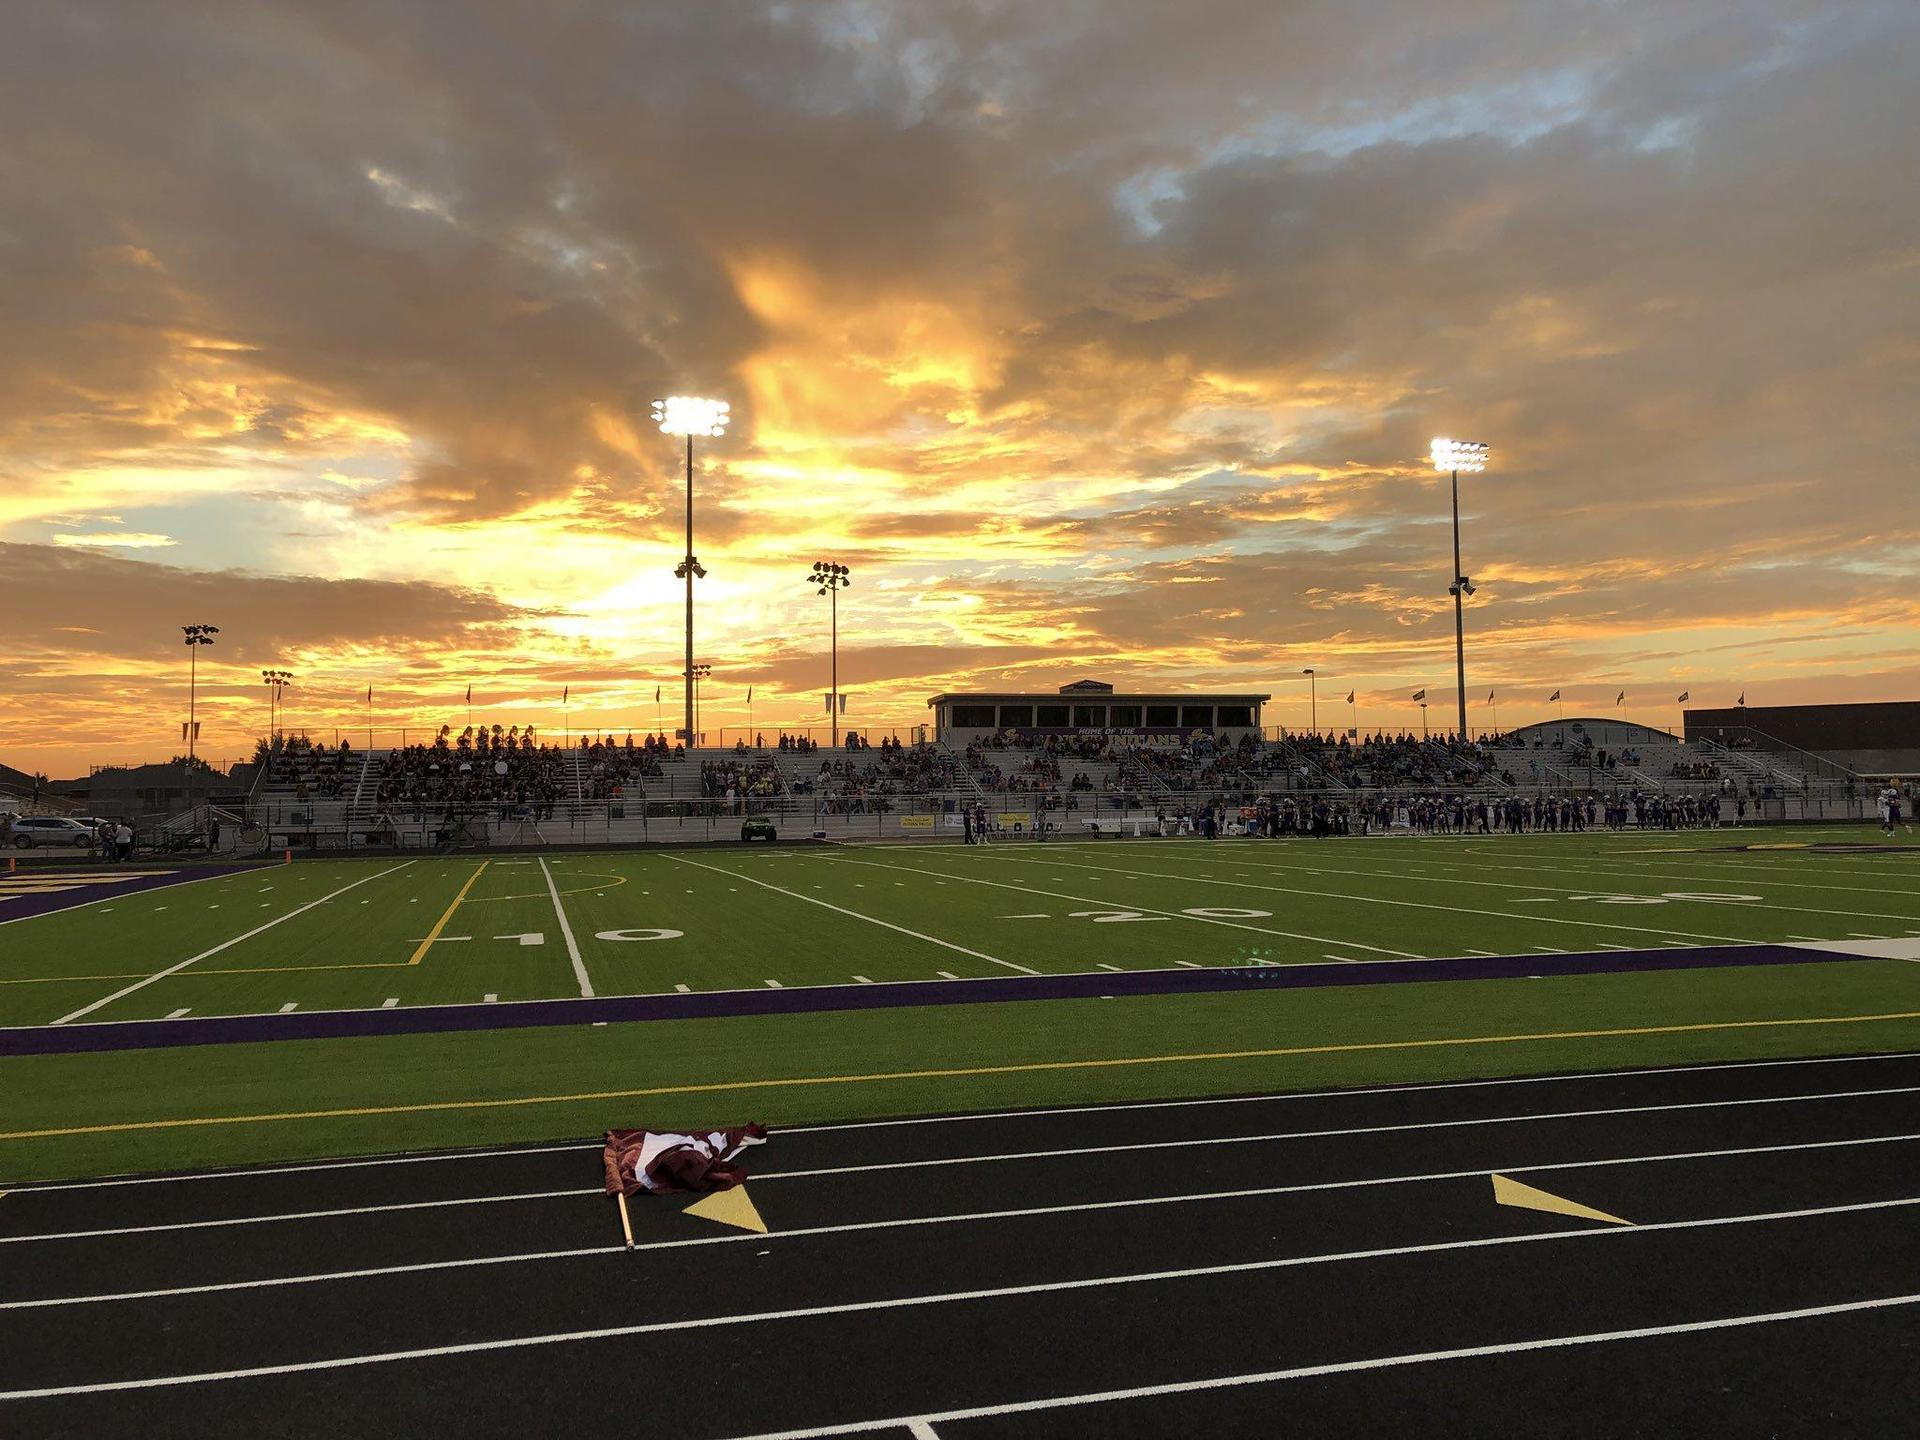 Friday Night Football Game with Sunset